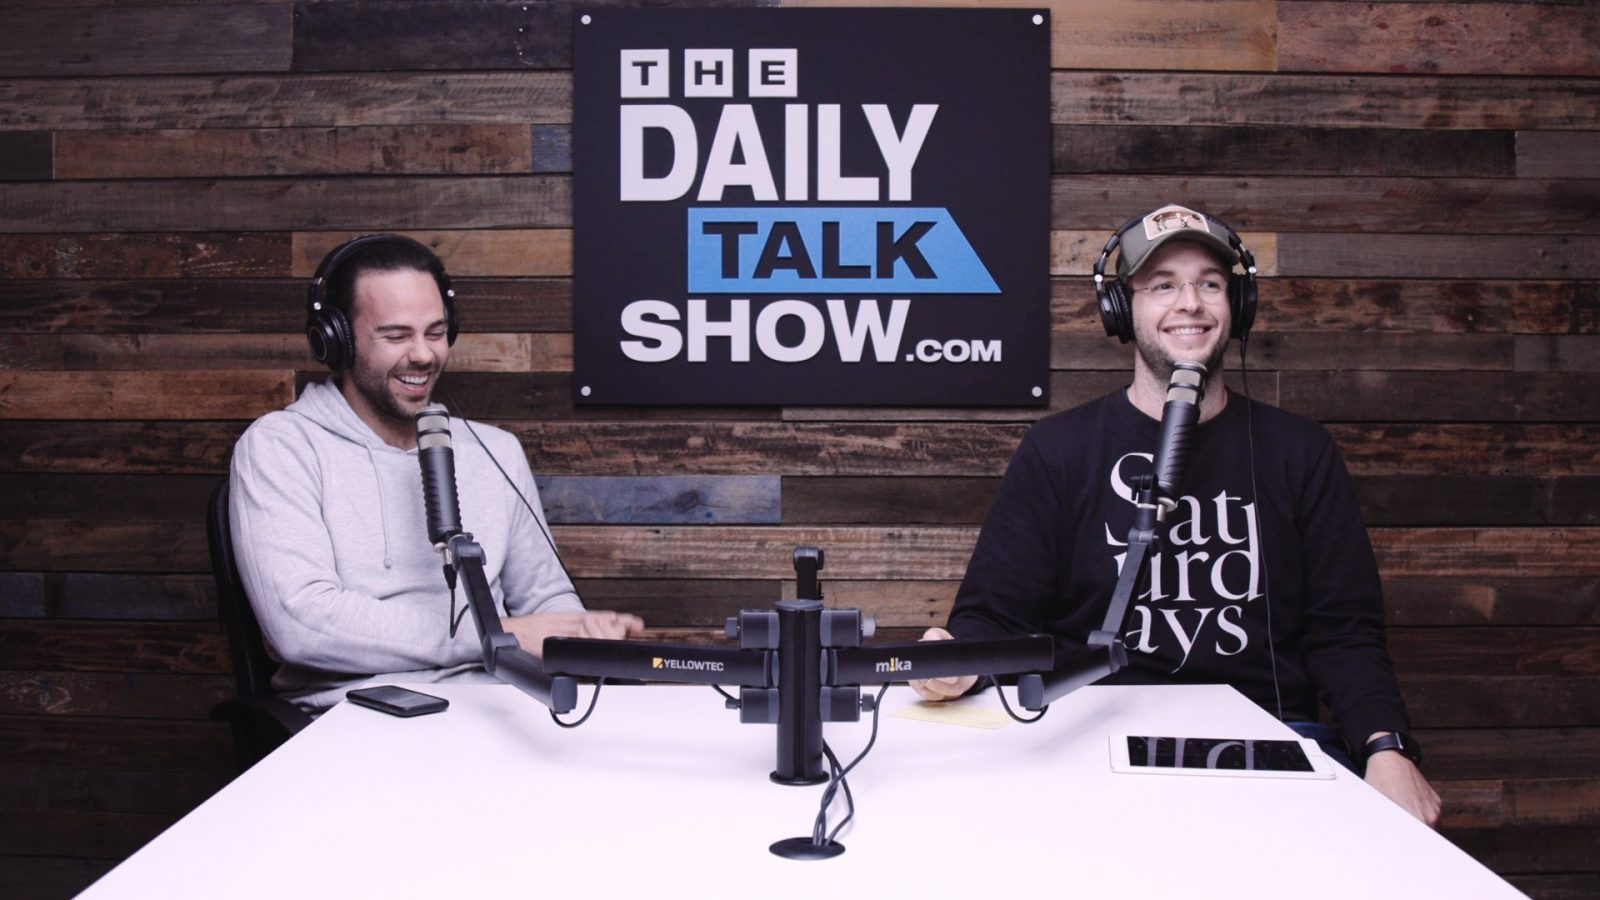 The-Daily-Talk-Show-394